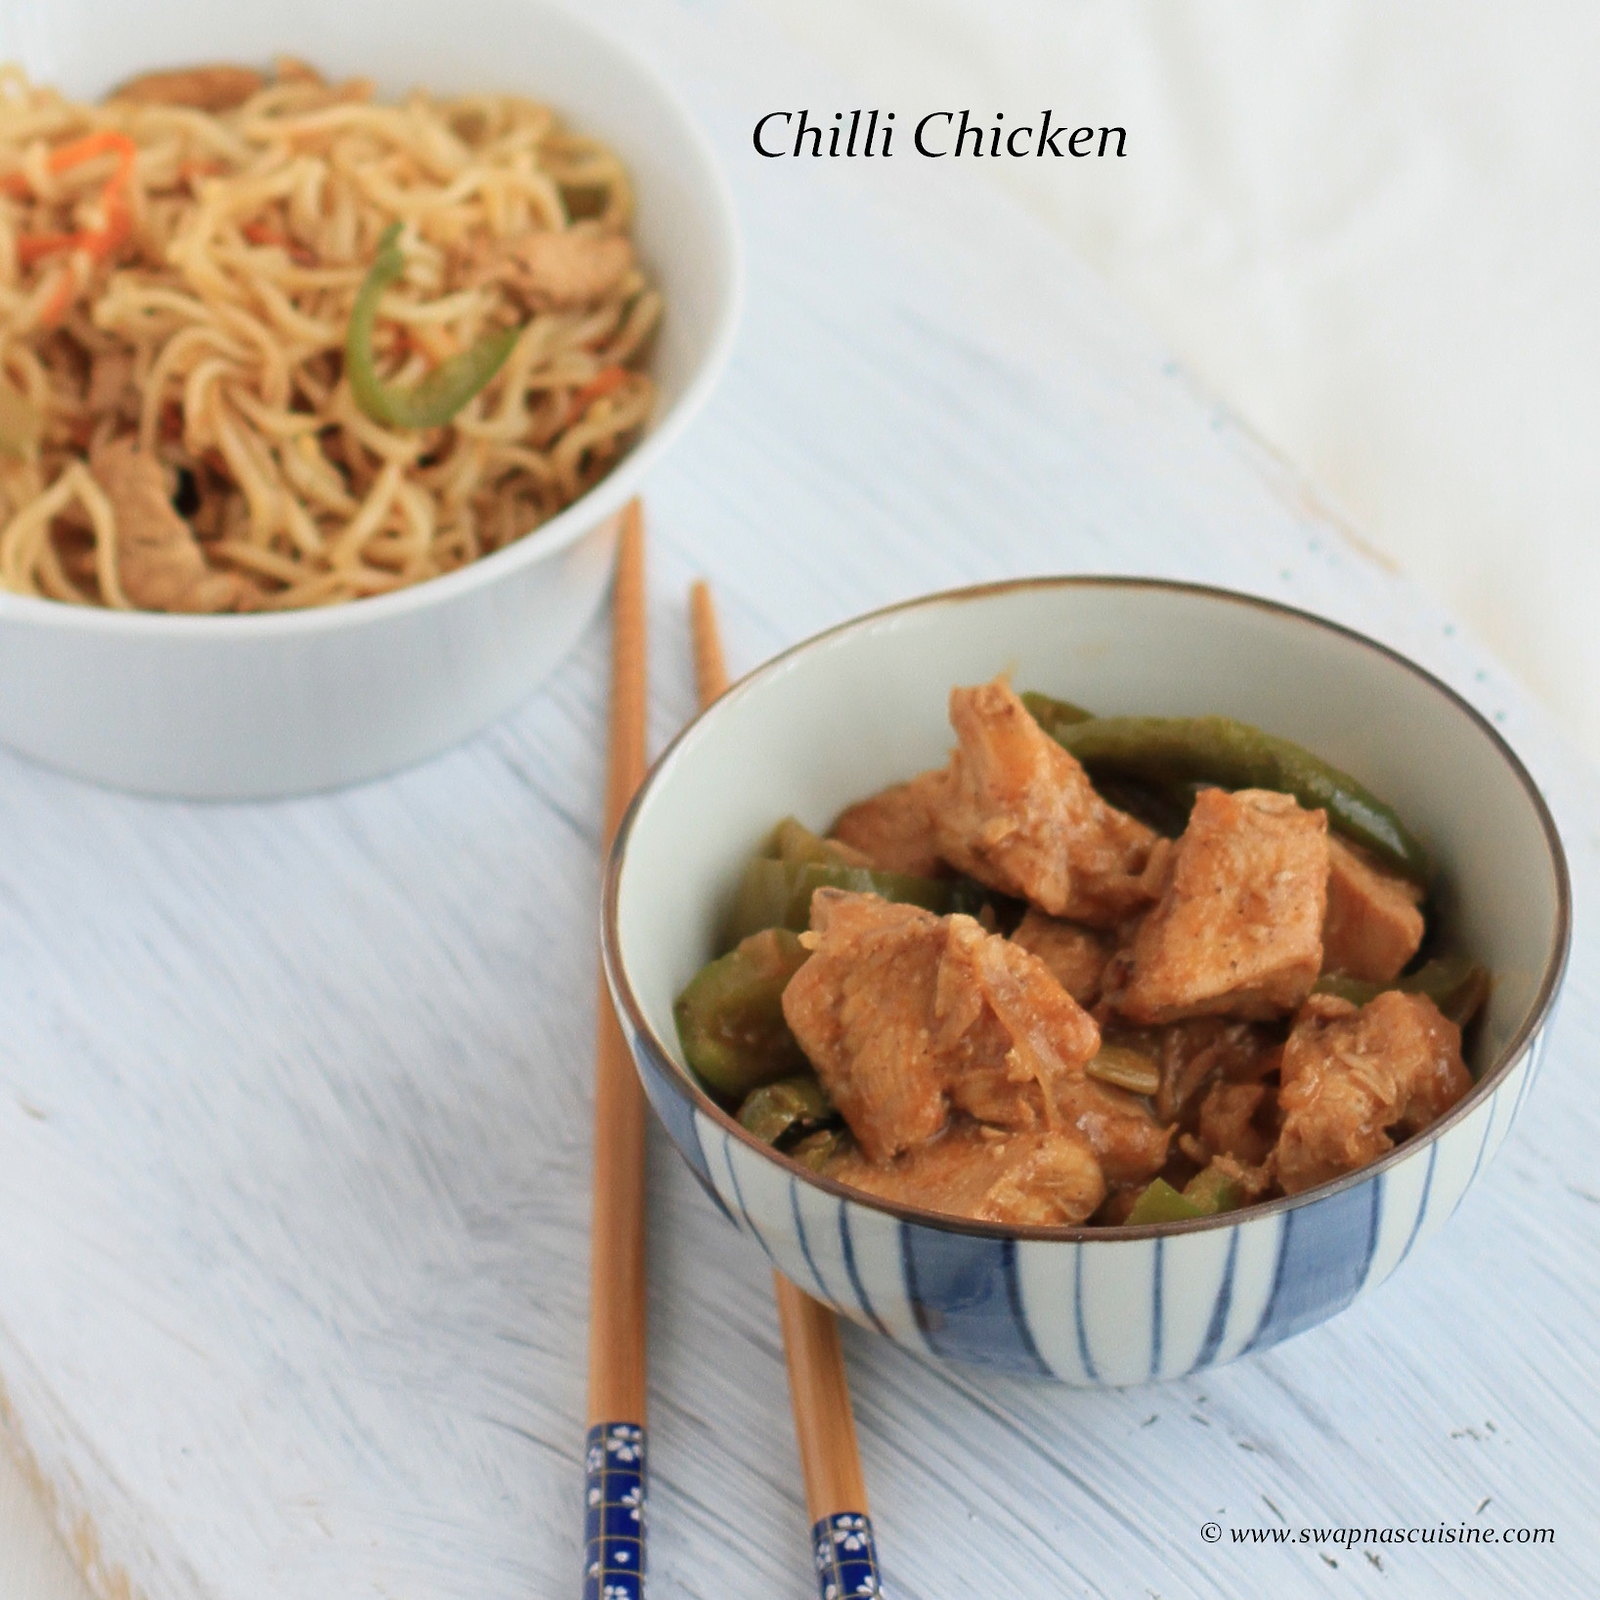 Recipe for Chilli Chicken